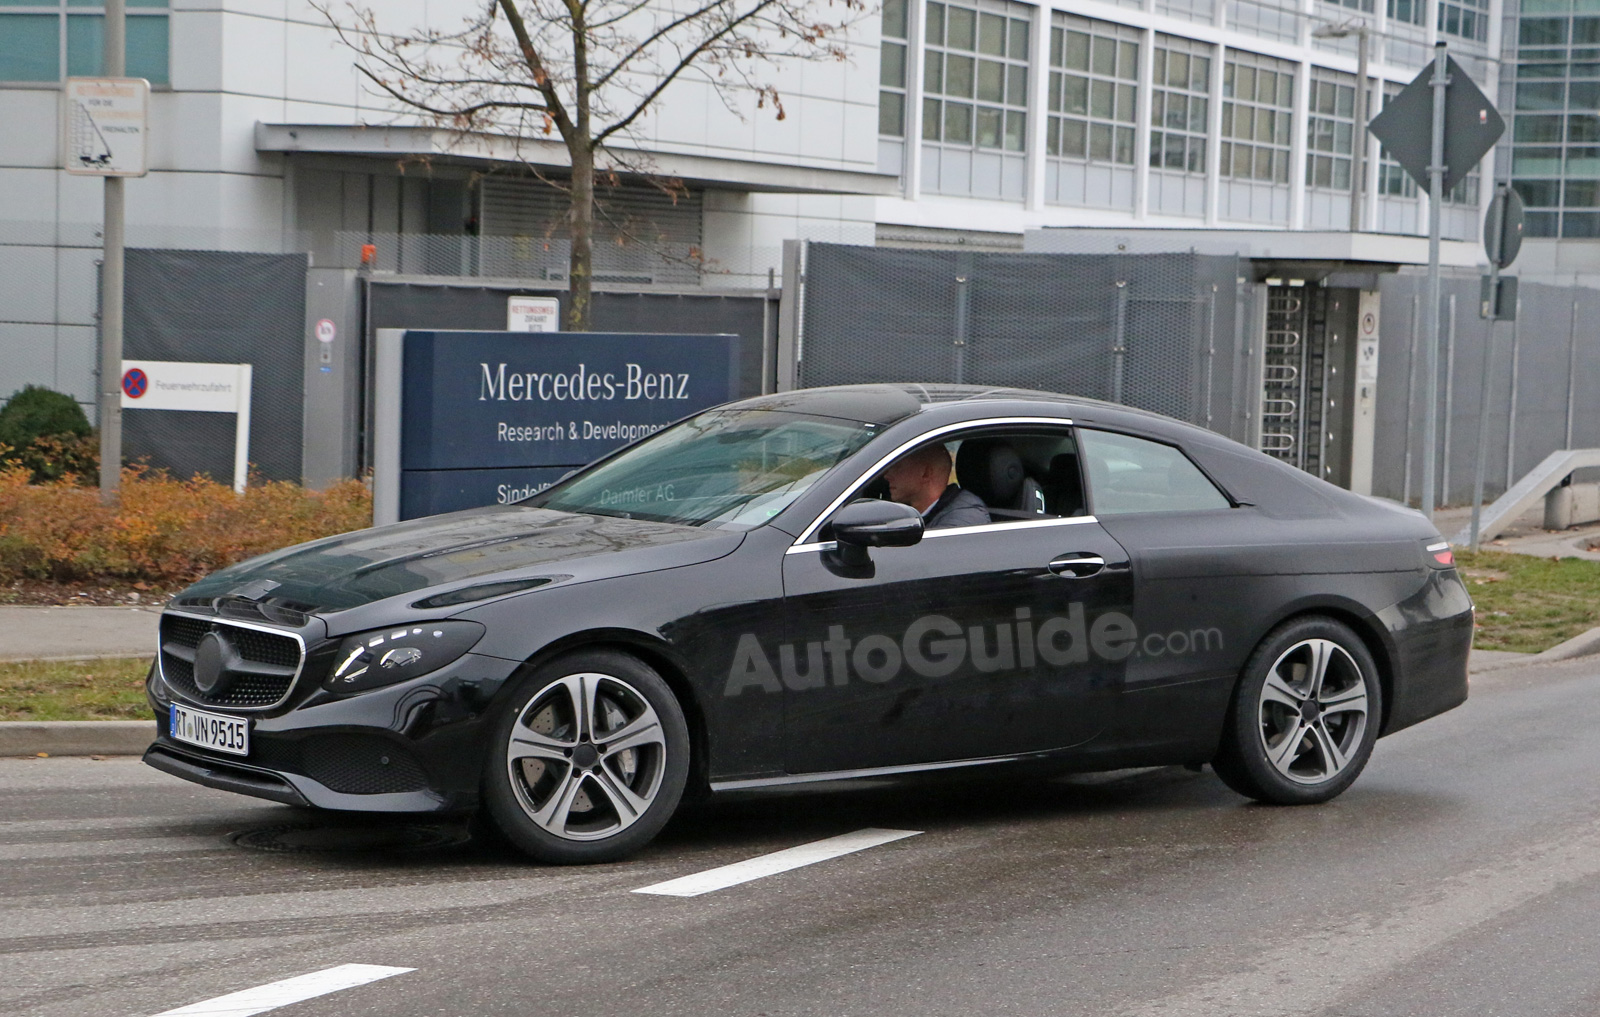 2018 mercedes e-class coupe caught mostly undisguised » autoguide